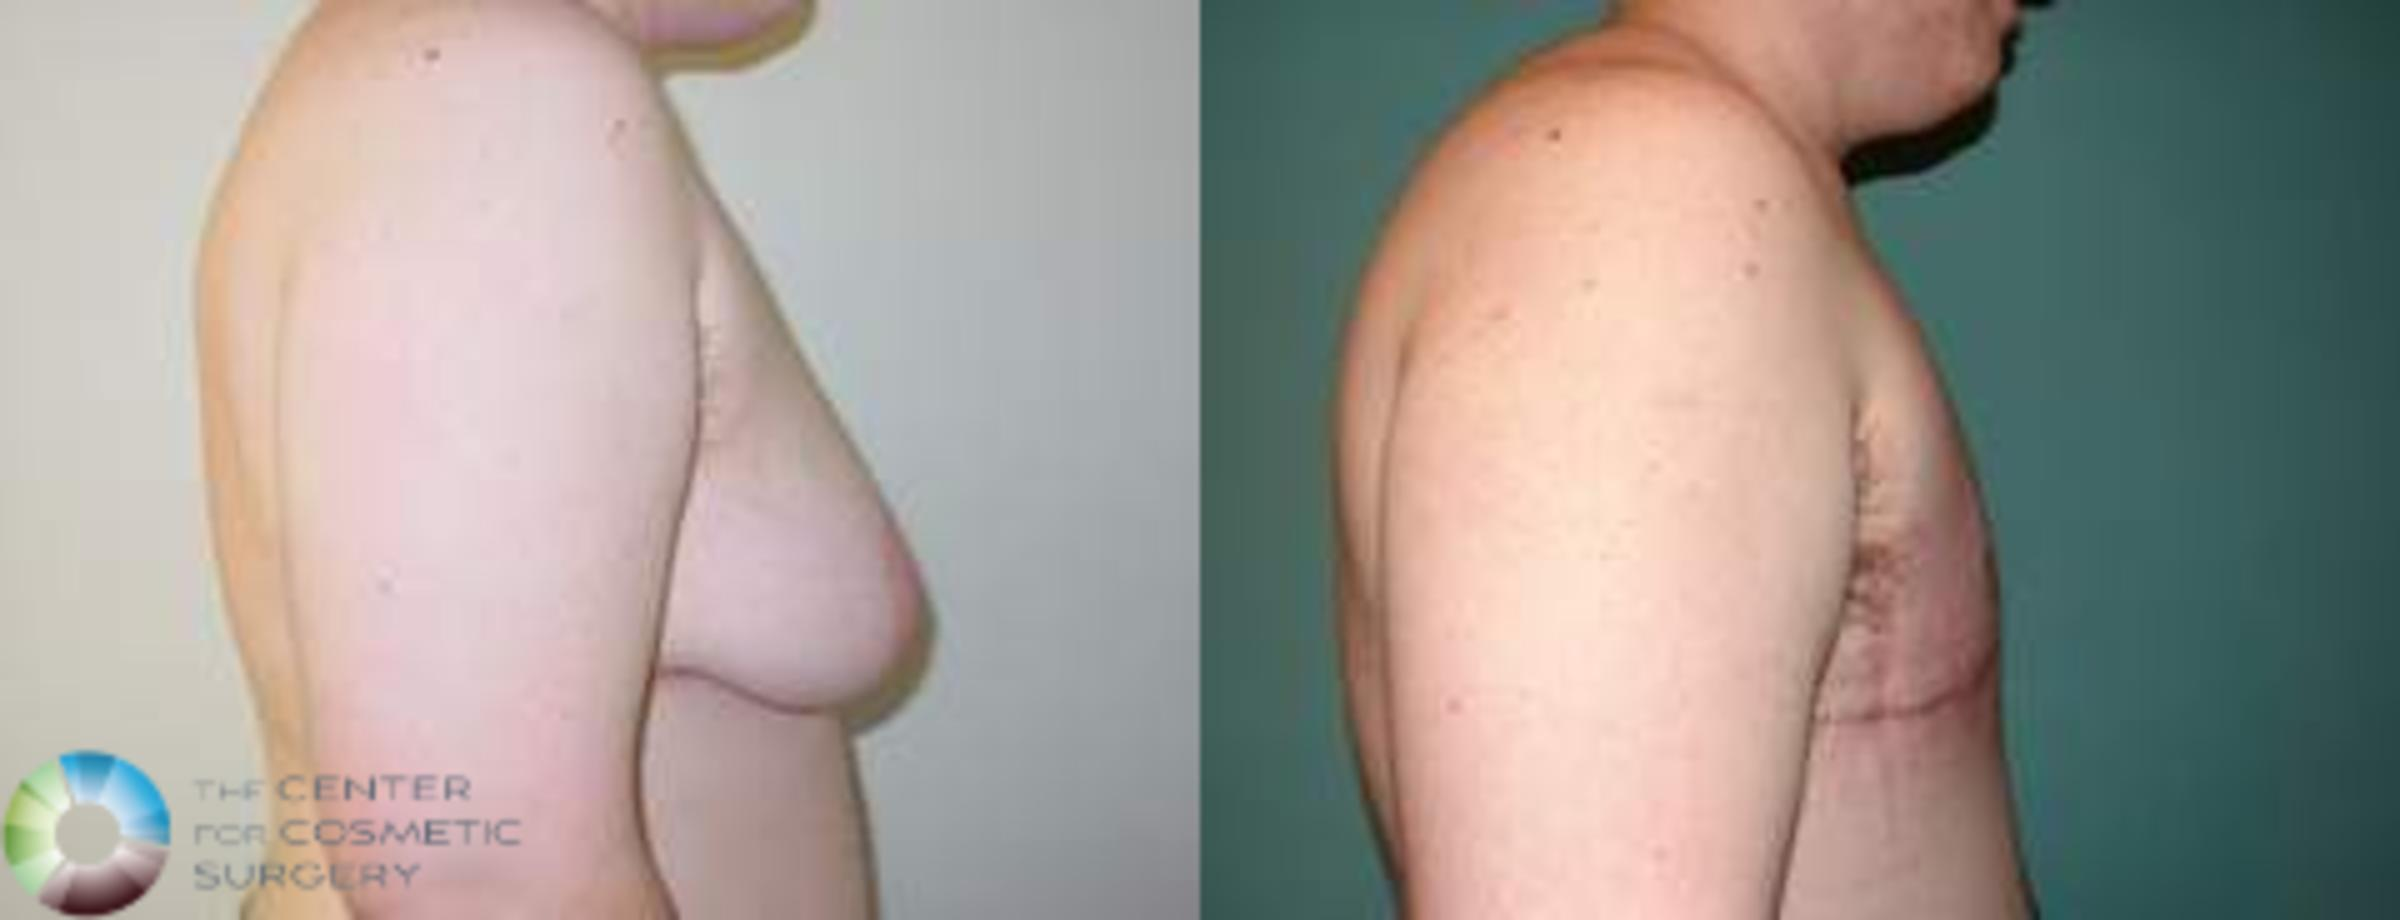 FTM Top Surgery/Chest Masculinization Case 560 Before & After View #3 | Golden, CO | The Center for Cosmetic Surgery